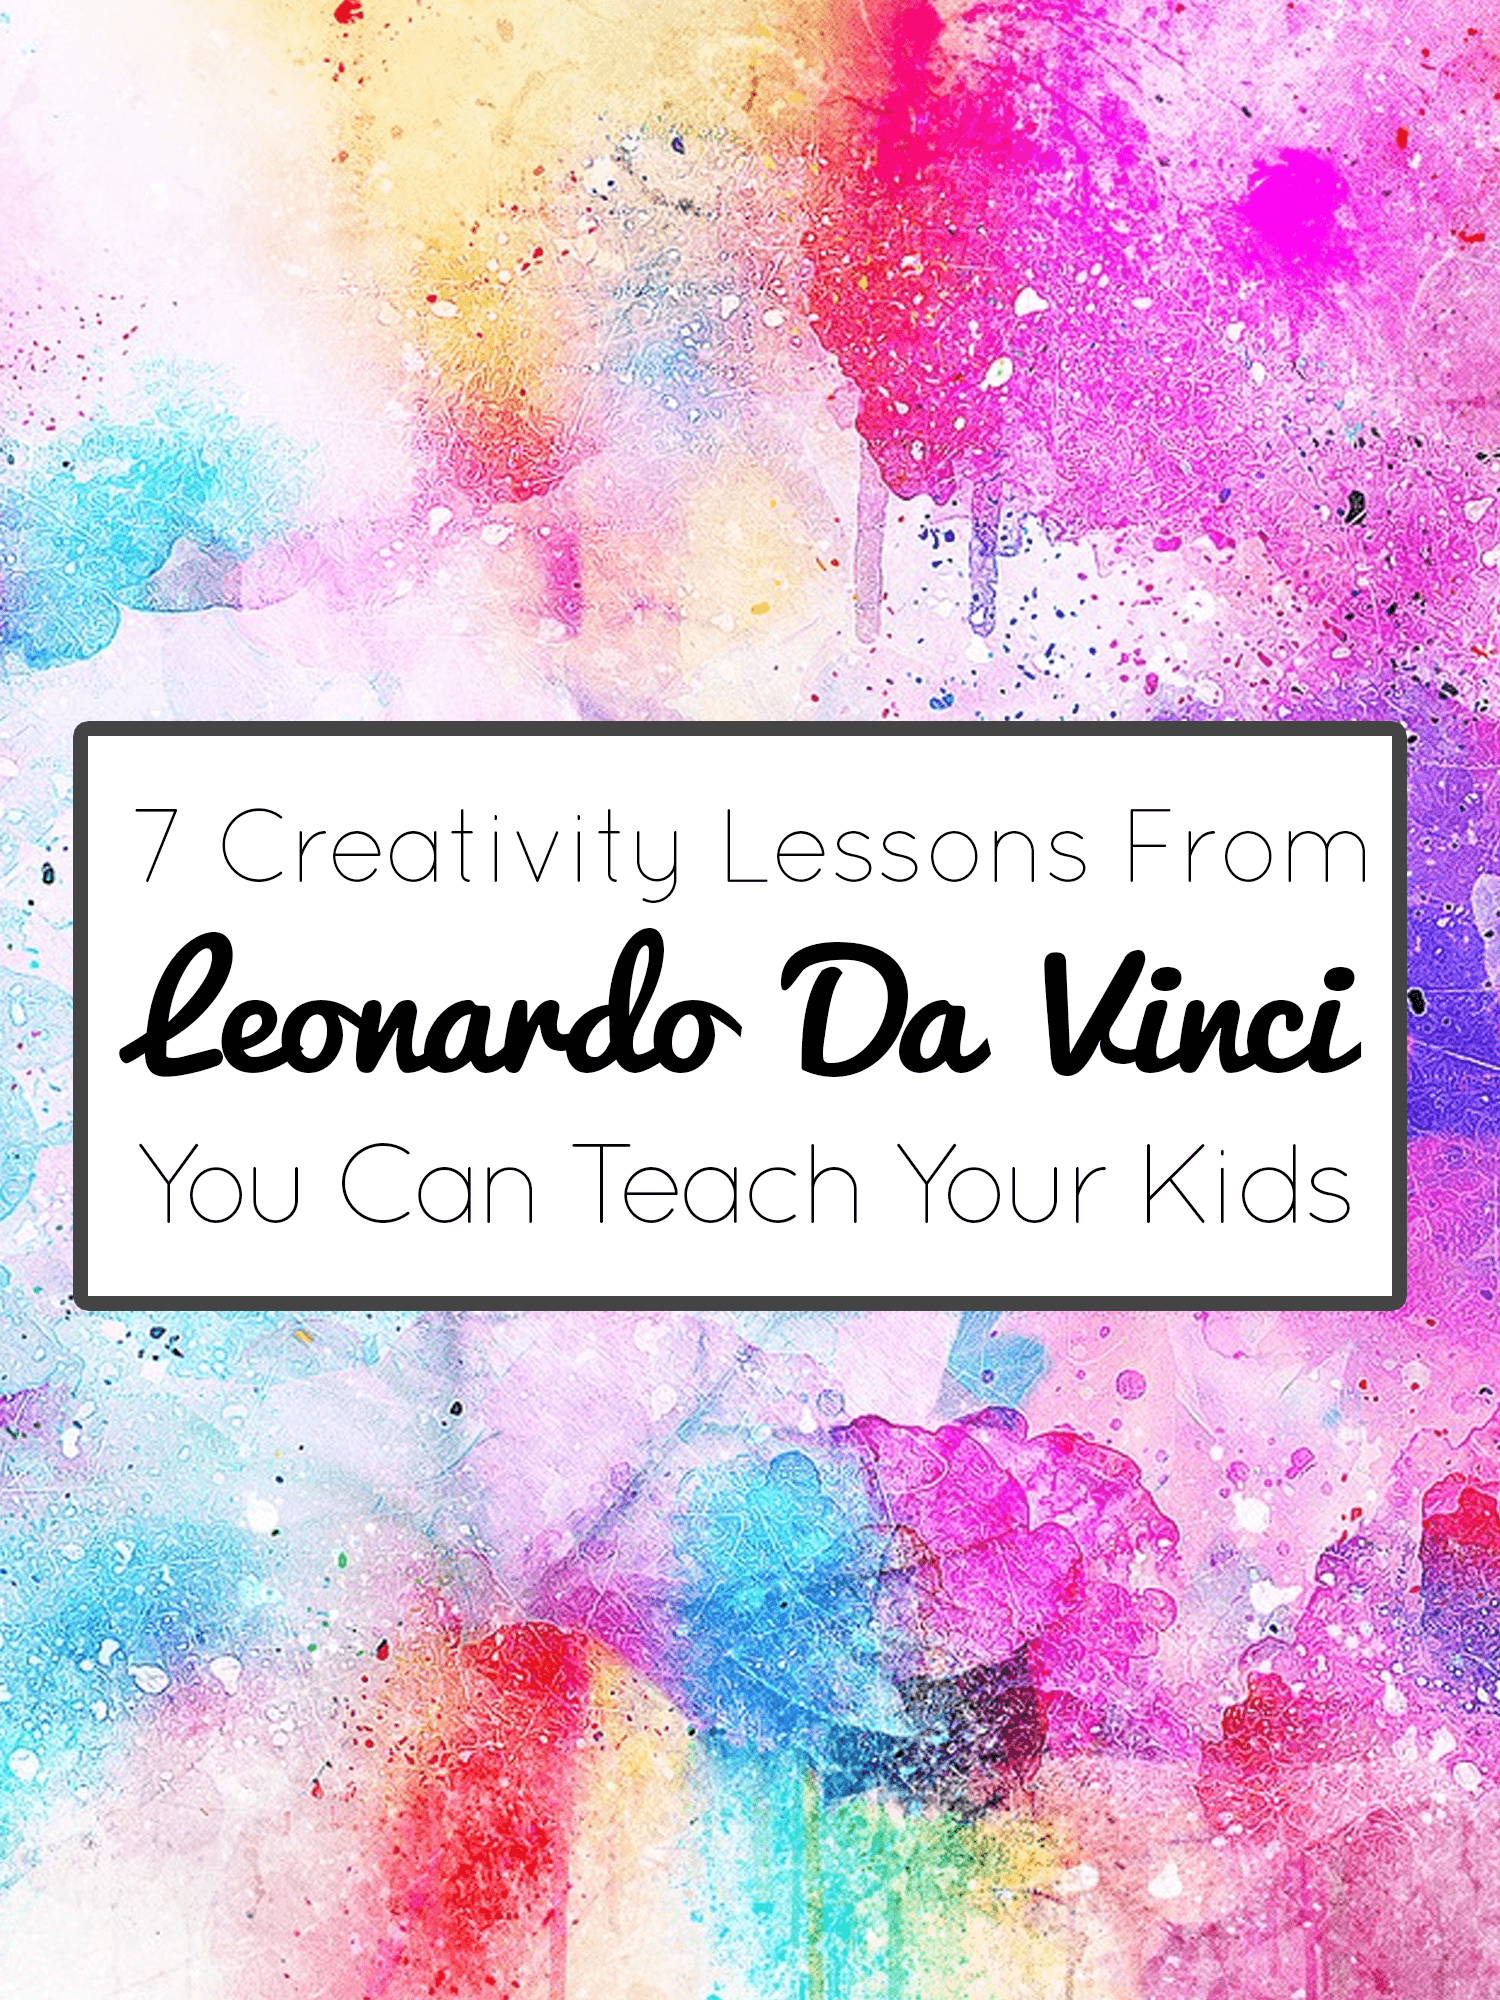 7 Creativity Lessons From Leonardo Da Vinci You Can Teach Your Kids imagine forest